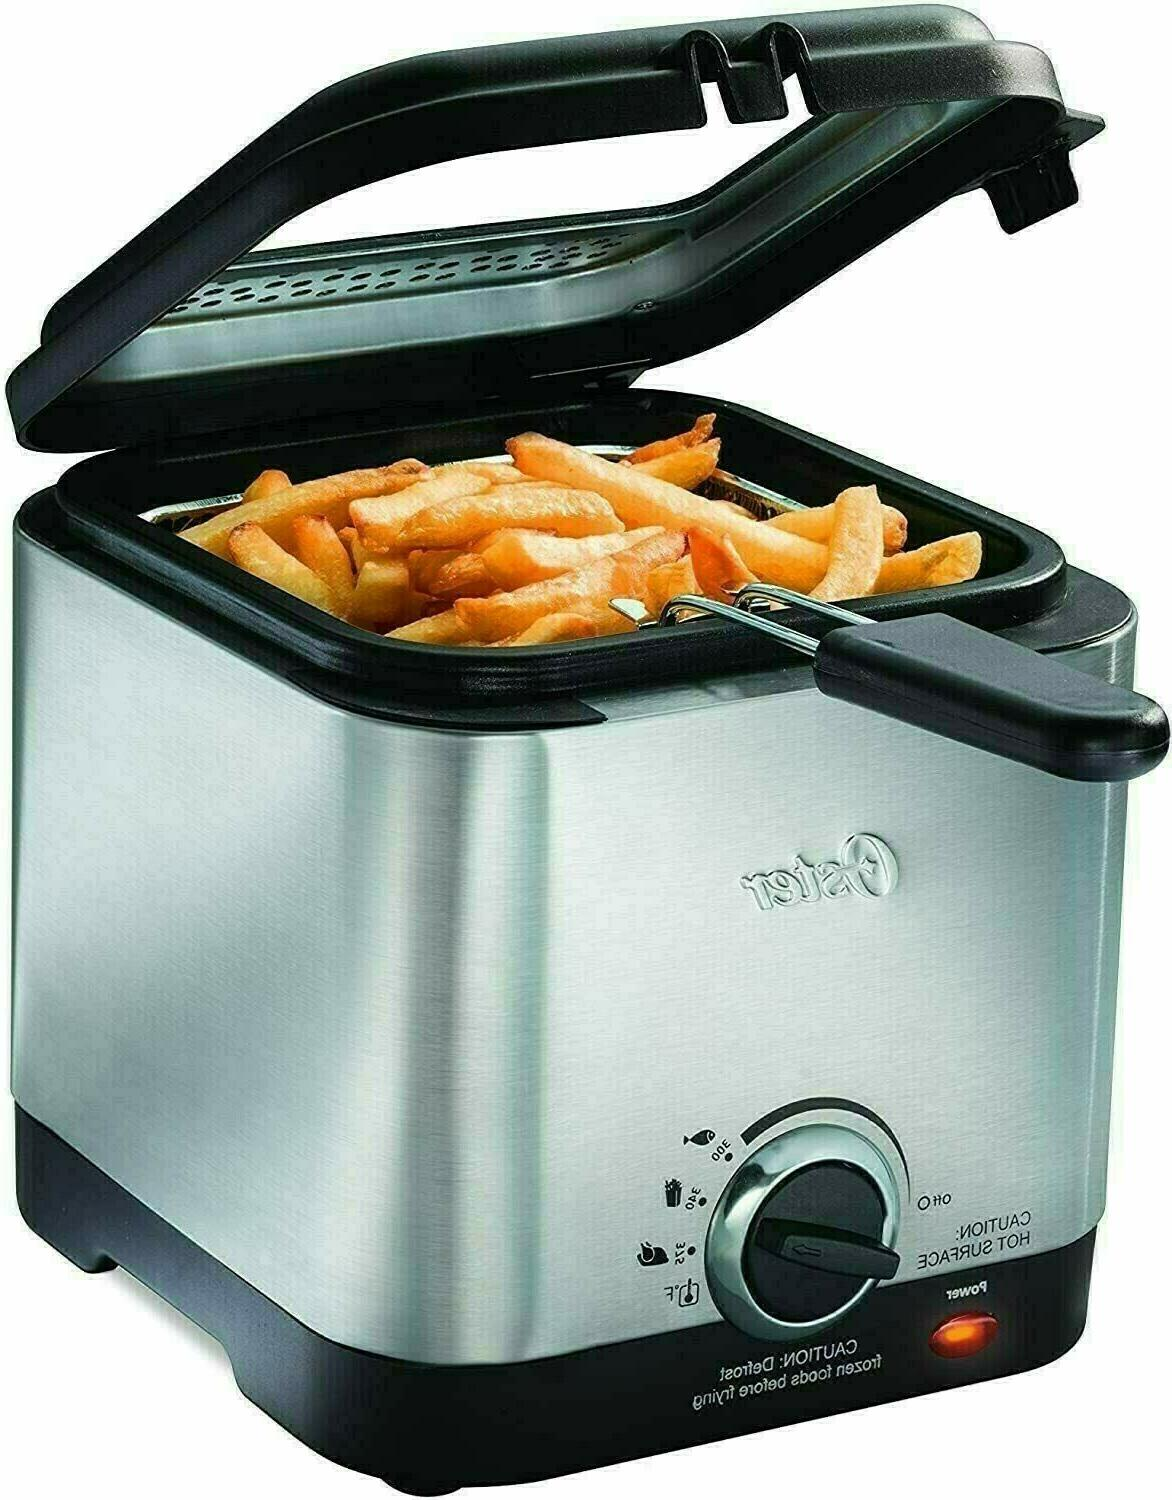 sale off ckstdf102 ss compact style stainless